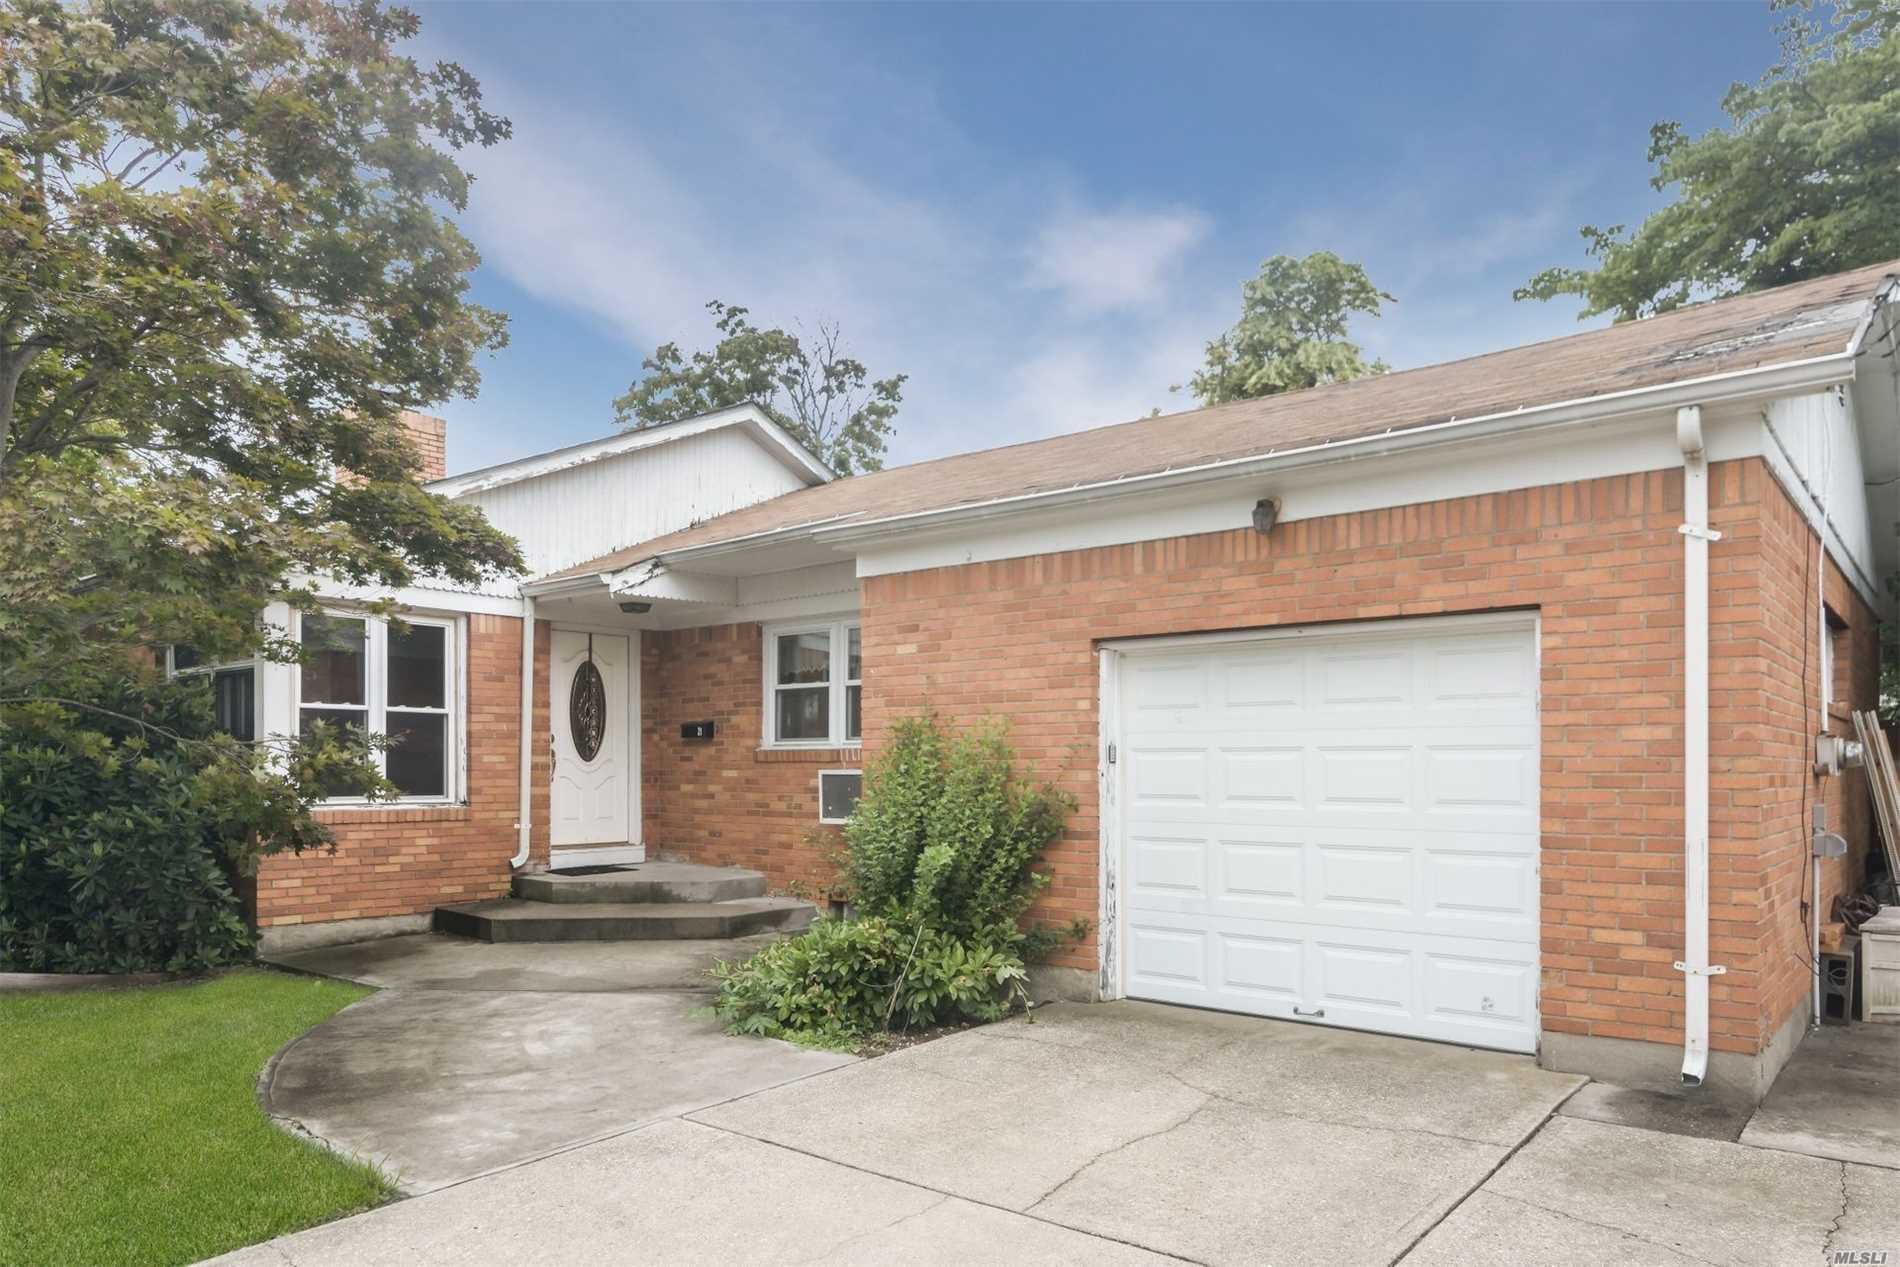 Spacious 3 Bedroom, 2 Full Bath Ranch In The Heart Of Hicksville. Featuring An Updated Kitchen And Full Finished Basement. Large Oversize Property, A Must See!!